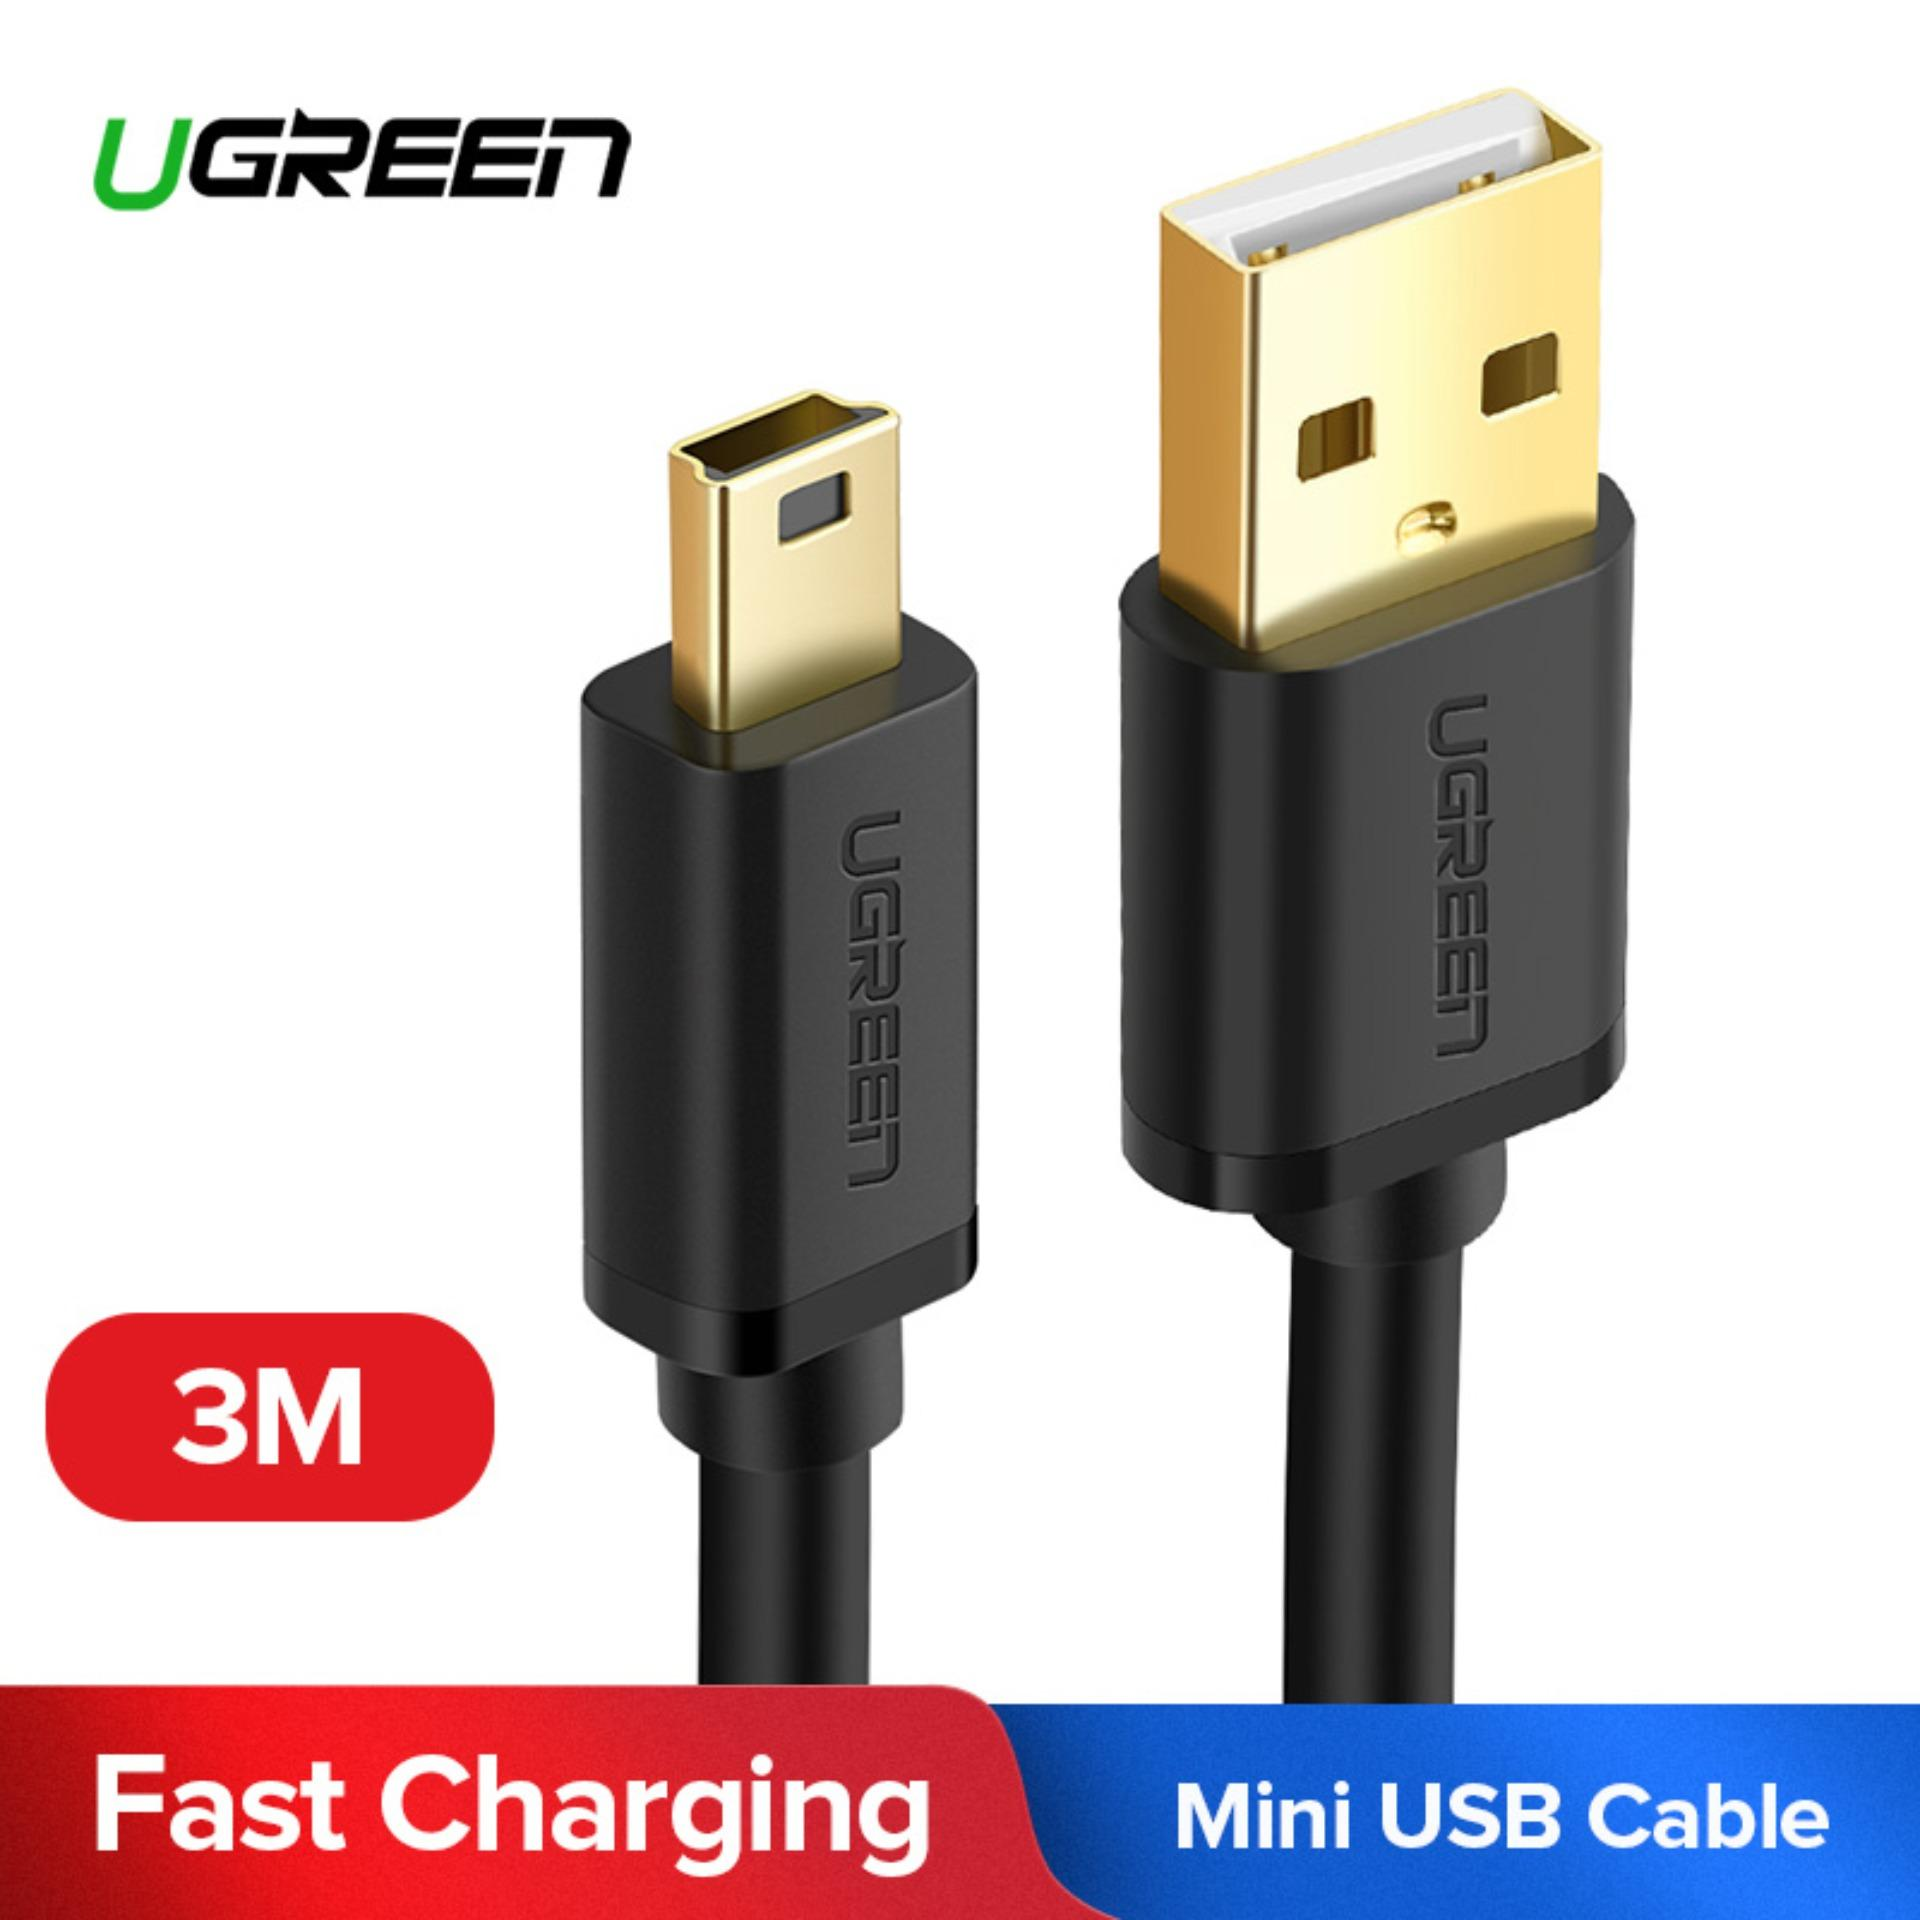 UGREEN USB 2.0 A Male to 5-Pin Mini B Fast Data Charger Cable for MP3 MP4 Players Tablets GPS Digital Camera HDD (3m)